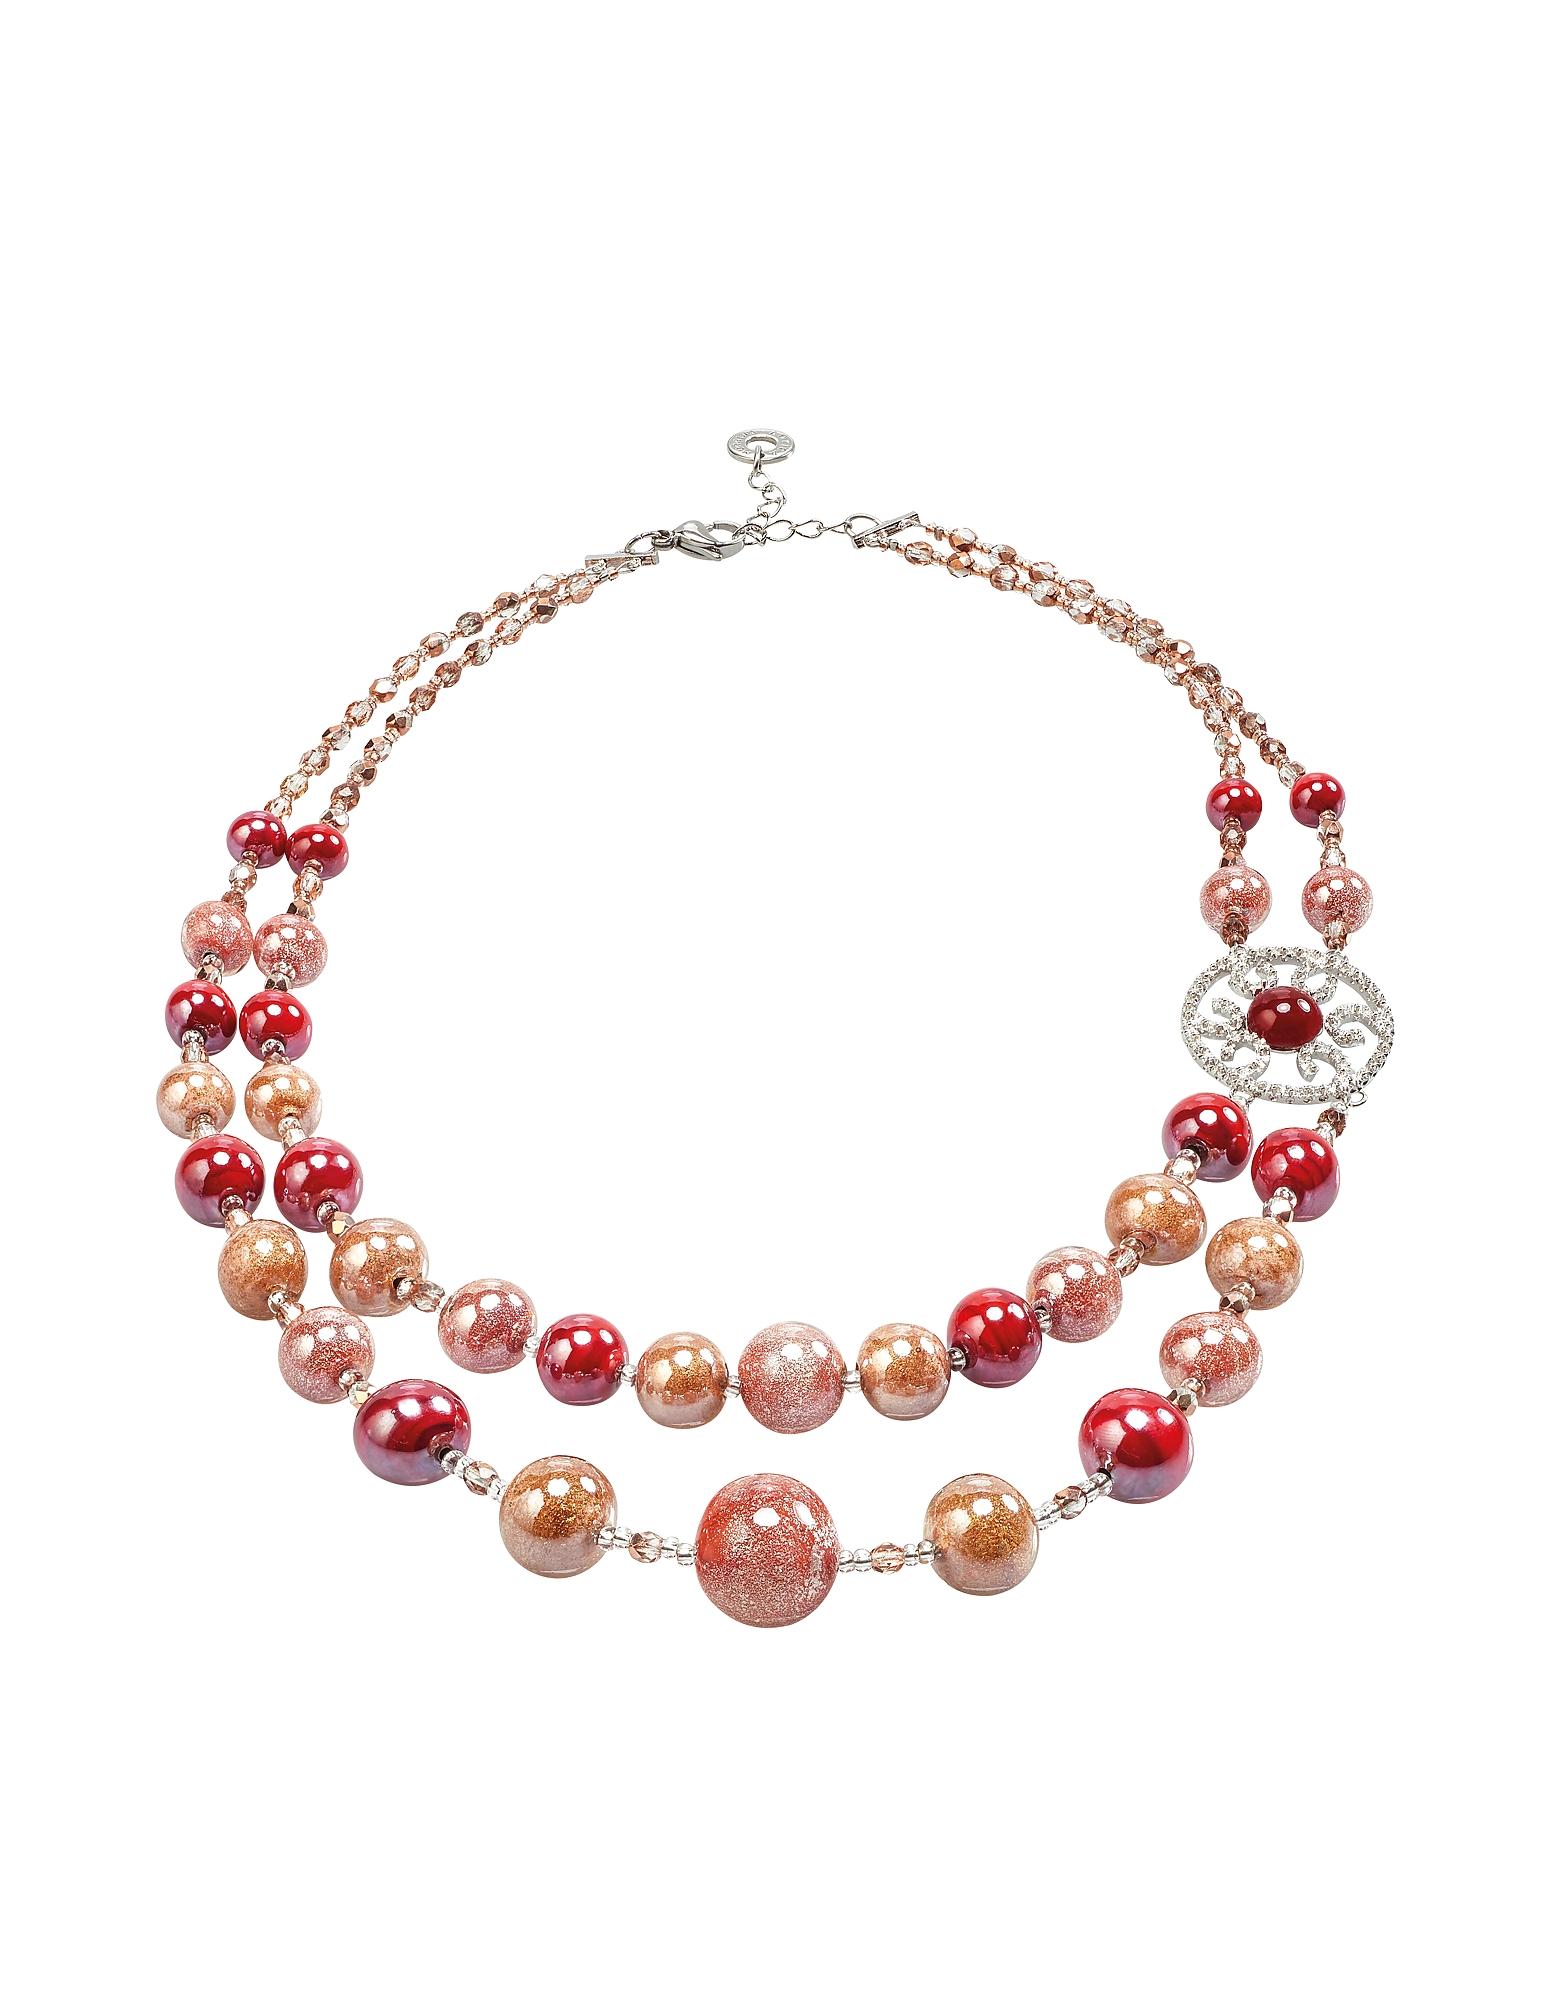 Antica Murrina Necklaces, Labyrinth 1 Necklace